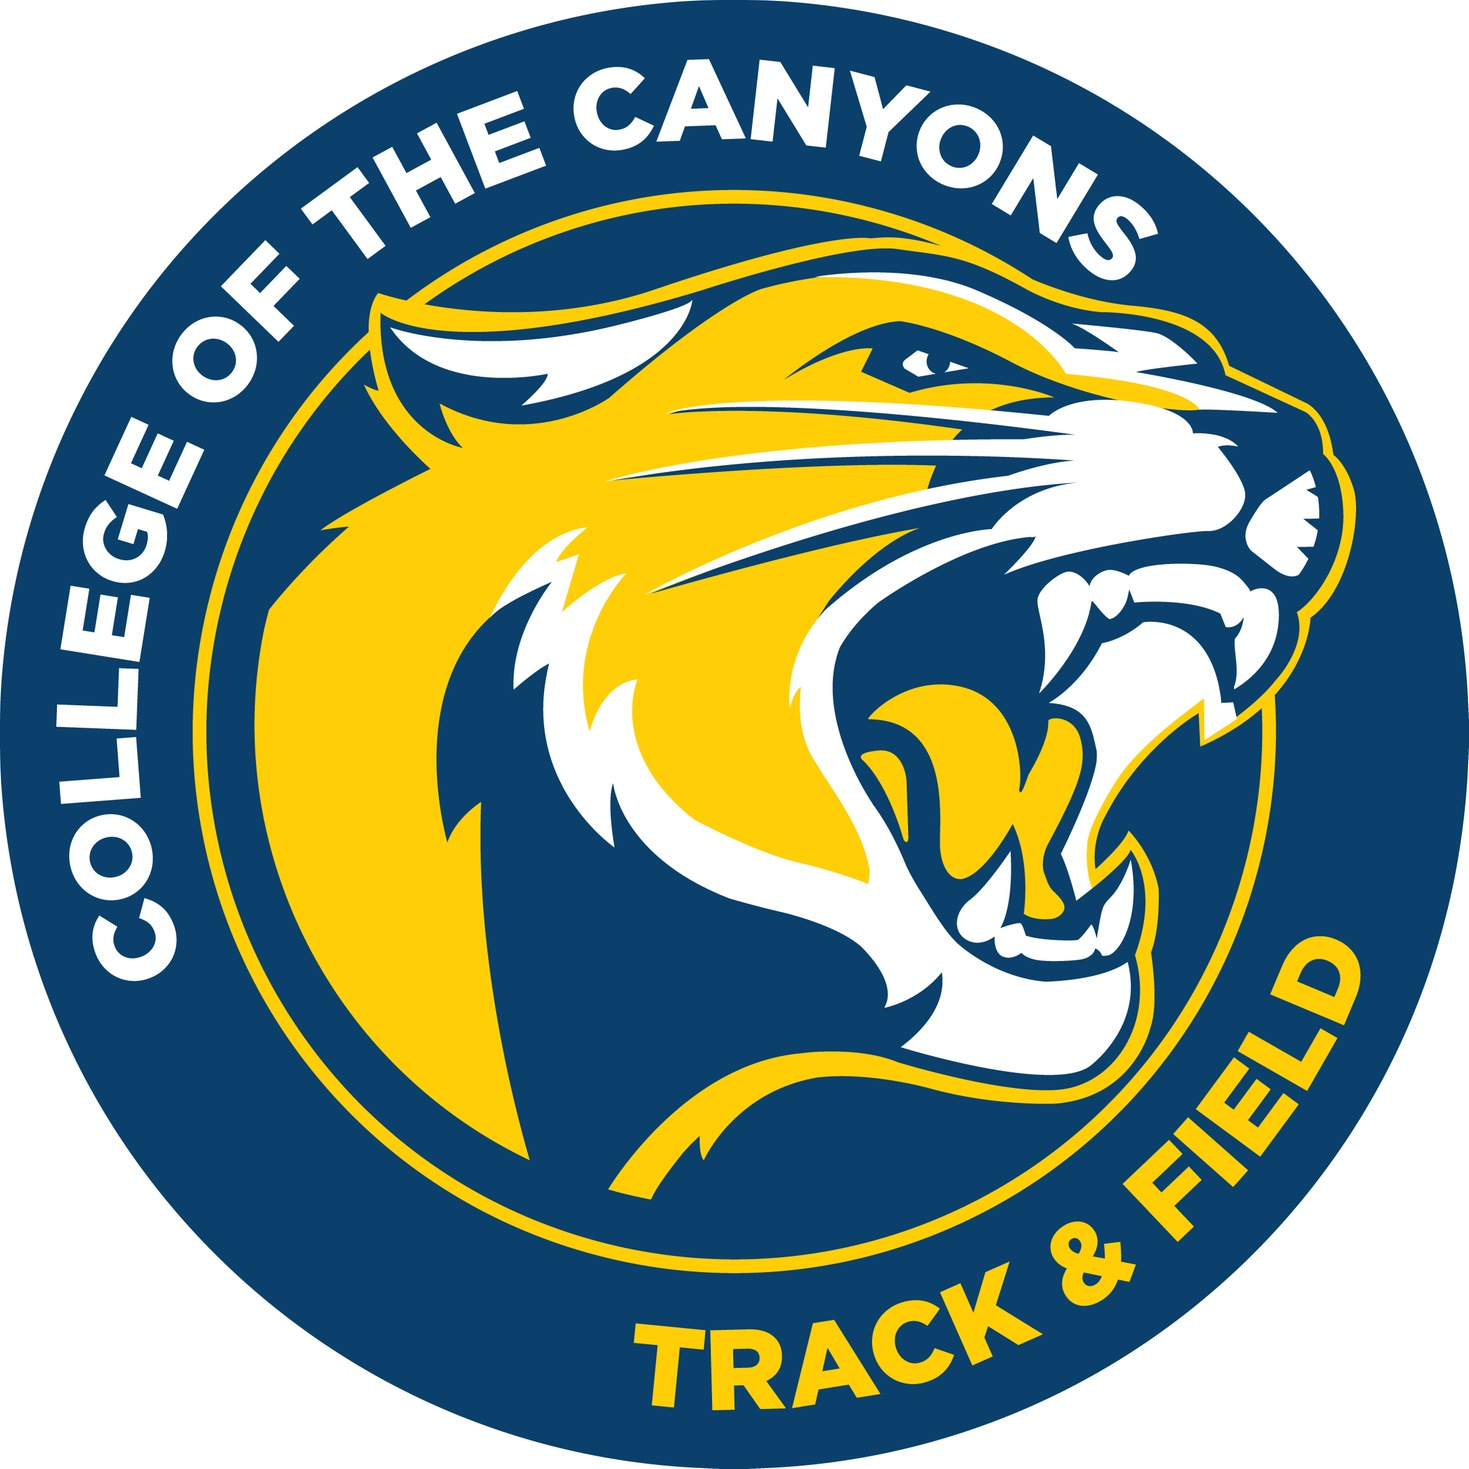 College of the Canyons track & field logo.